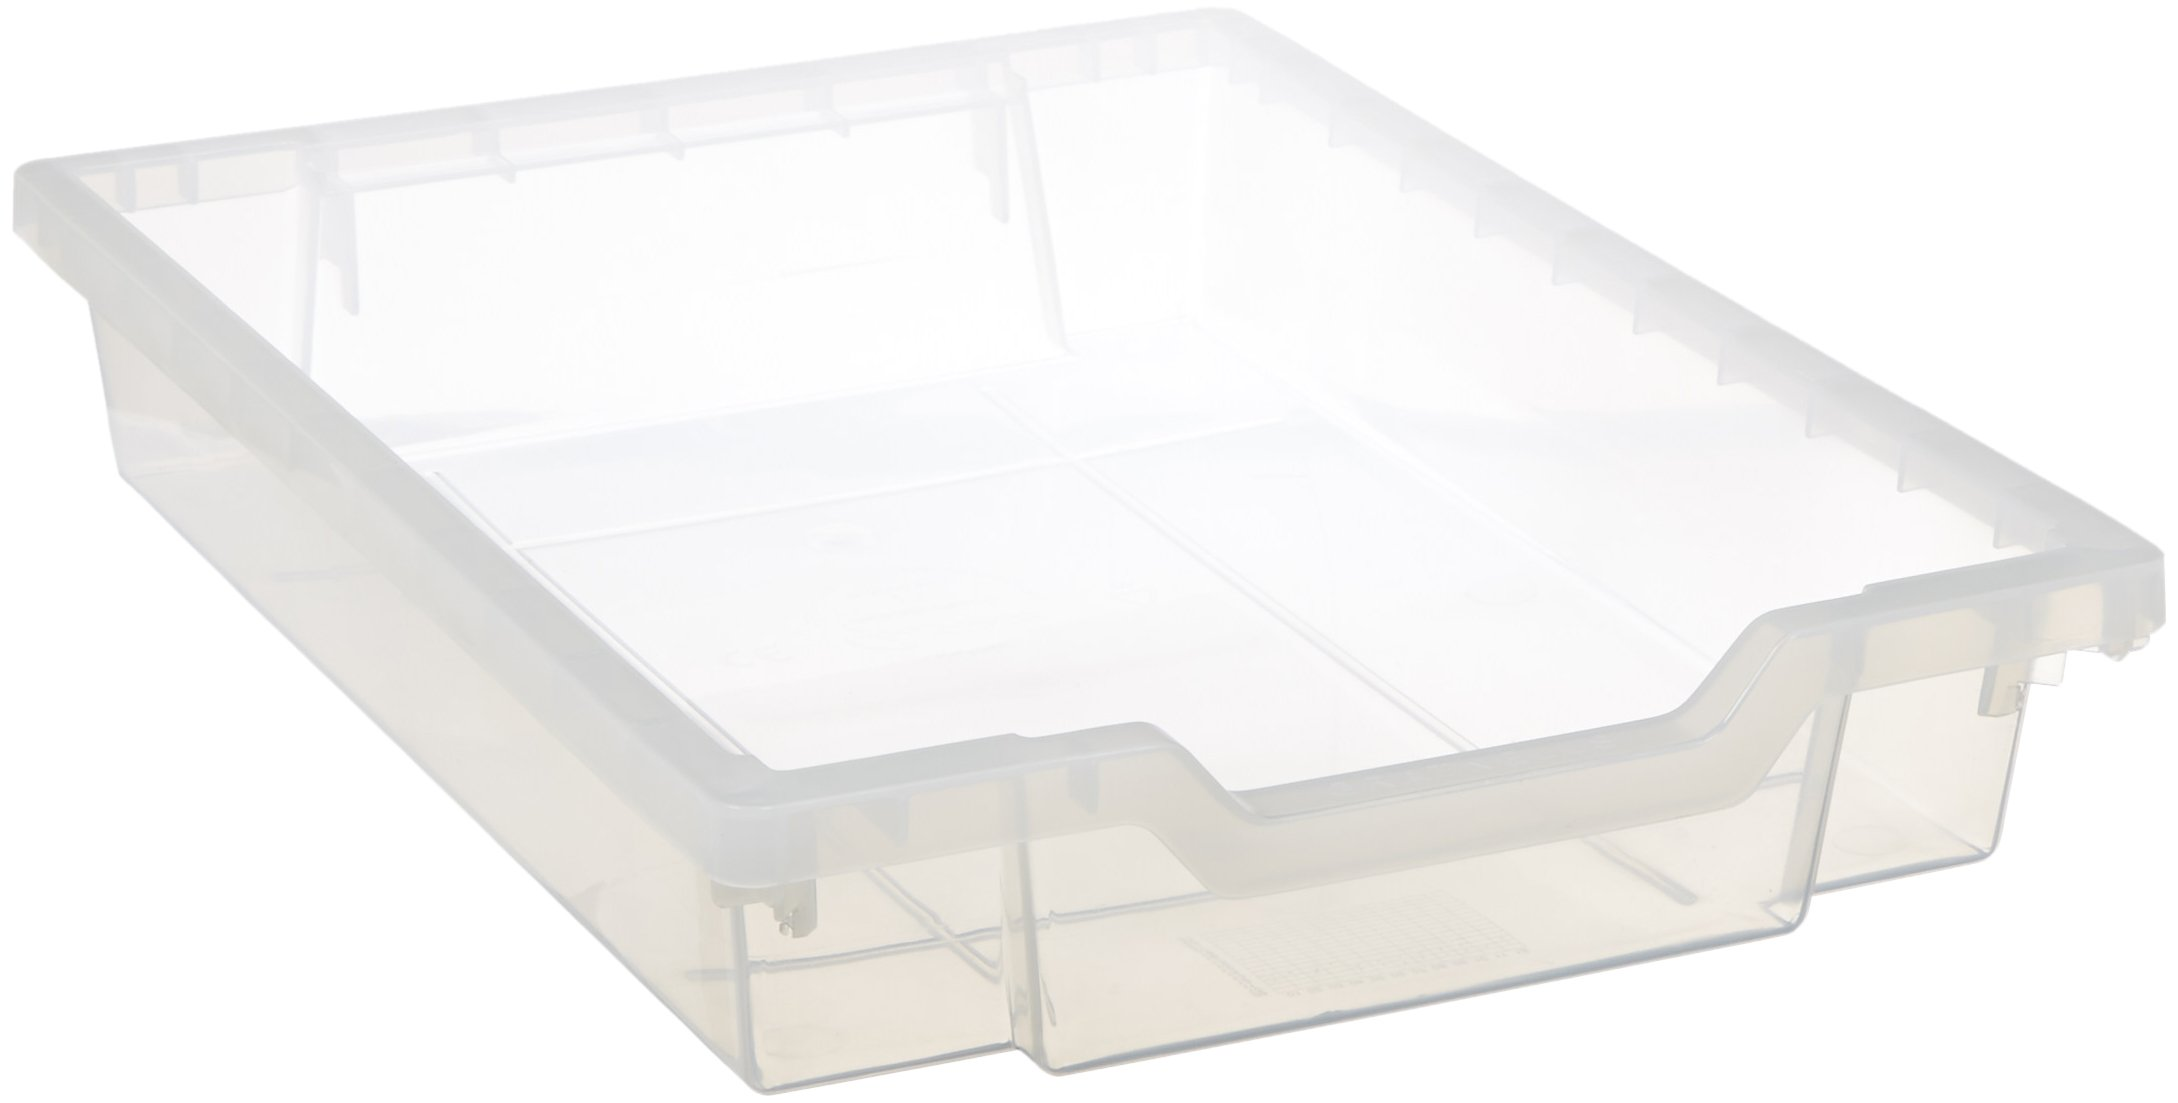 Childs Play Gratnell Polypropylene 18 Small and 9 Medium Tray